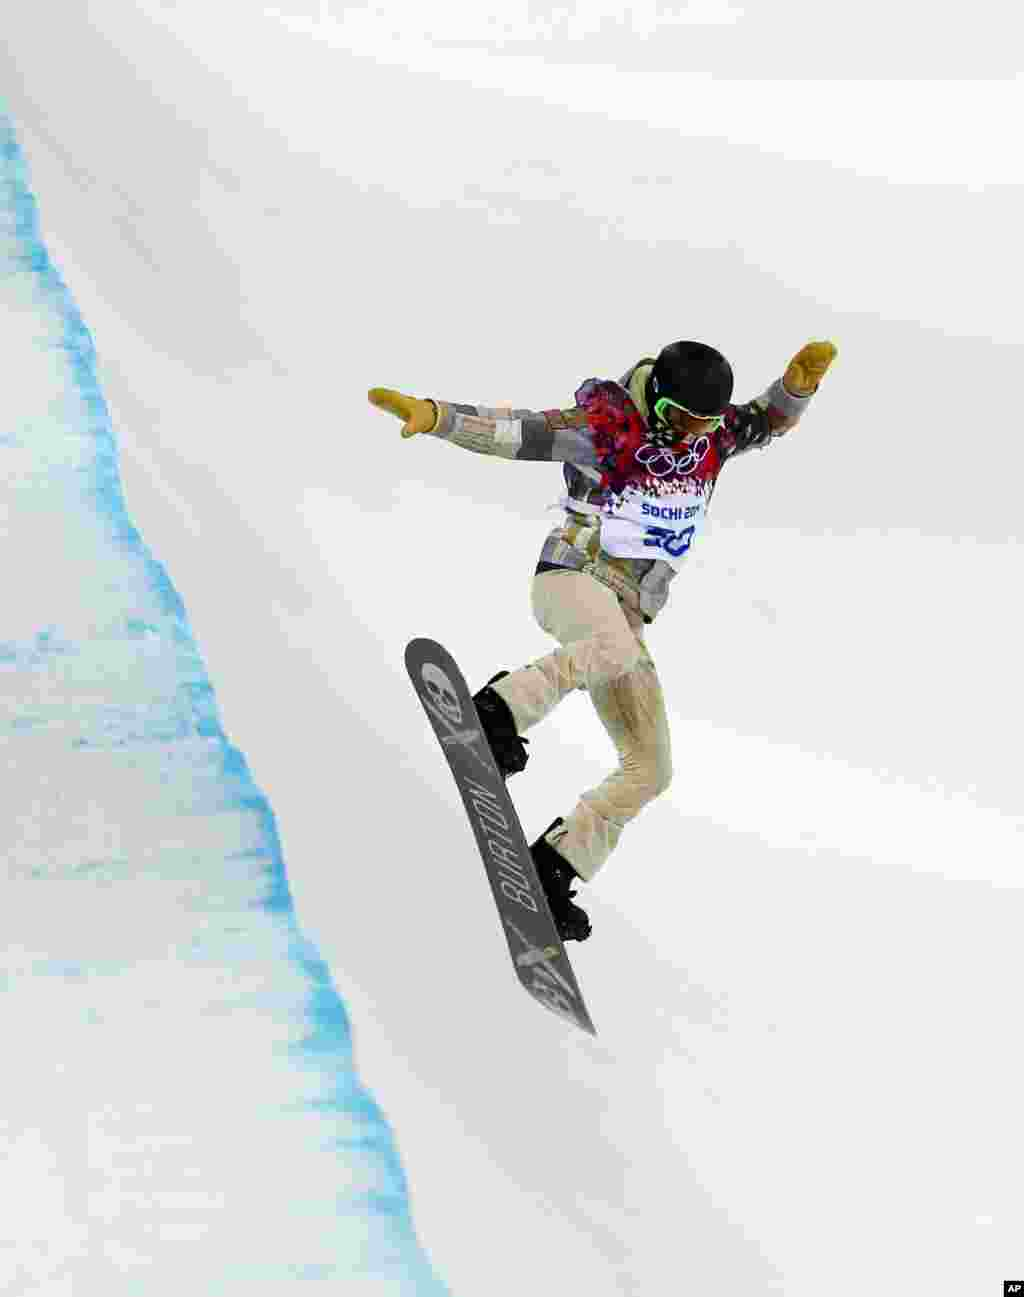 Shaun White of the United States trains in the half pipe at Rosa Khutor Extreme Park, in Krasnaya Polyana, Russia, Feb. 9, 2014.